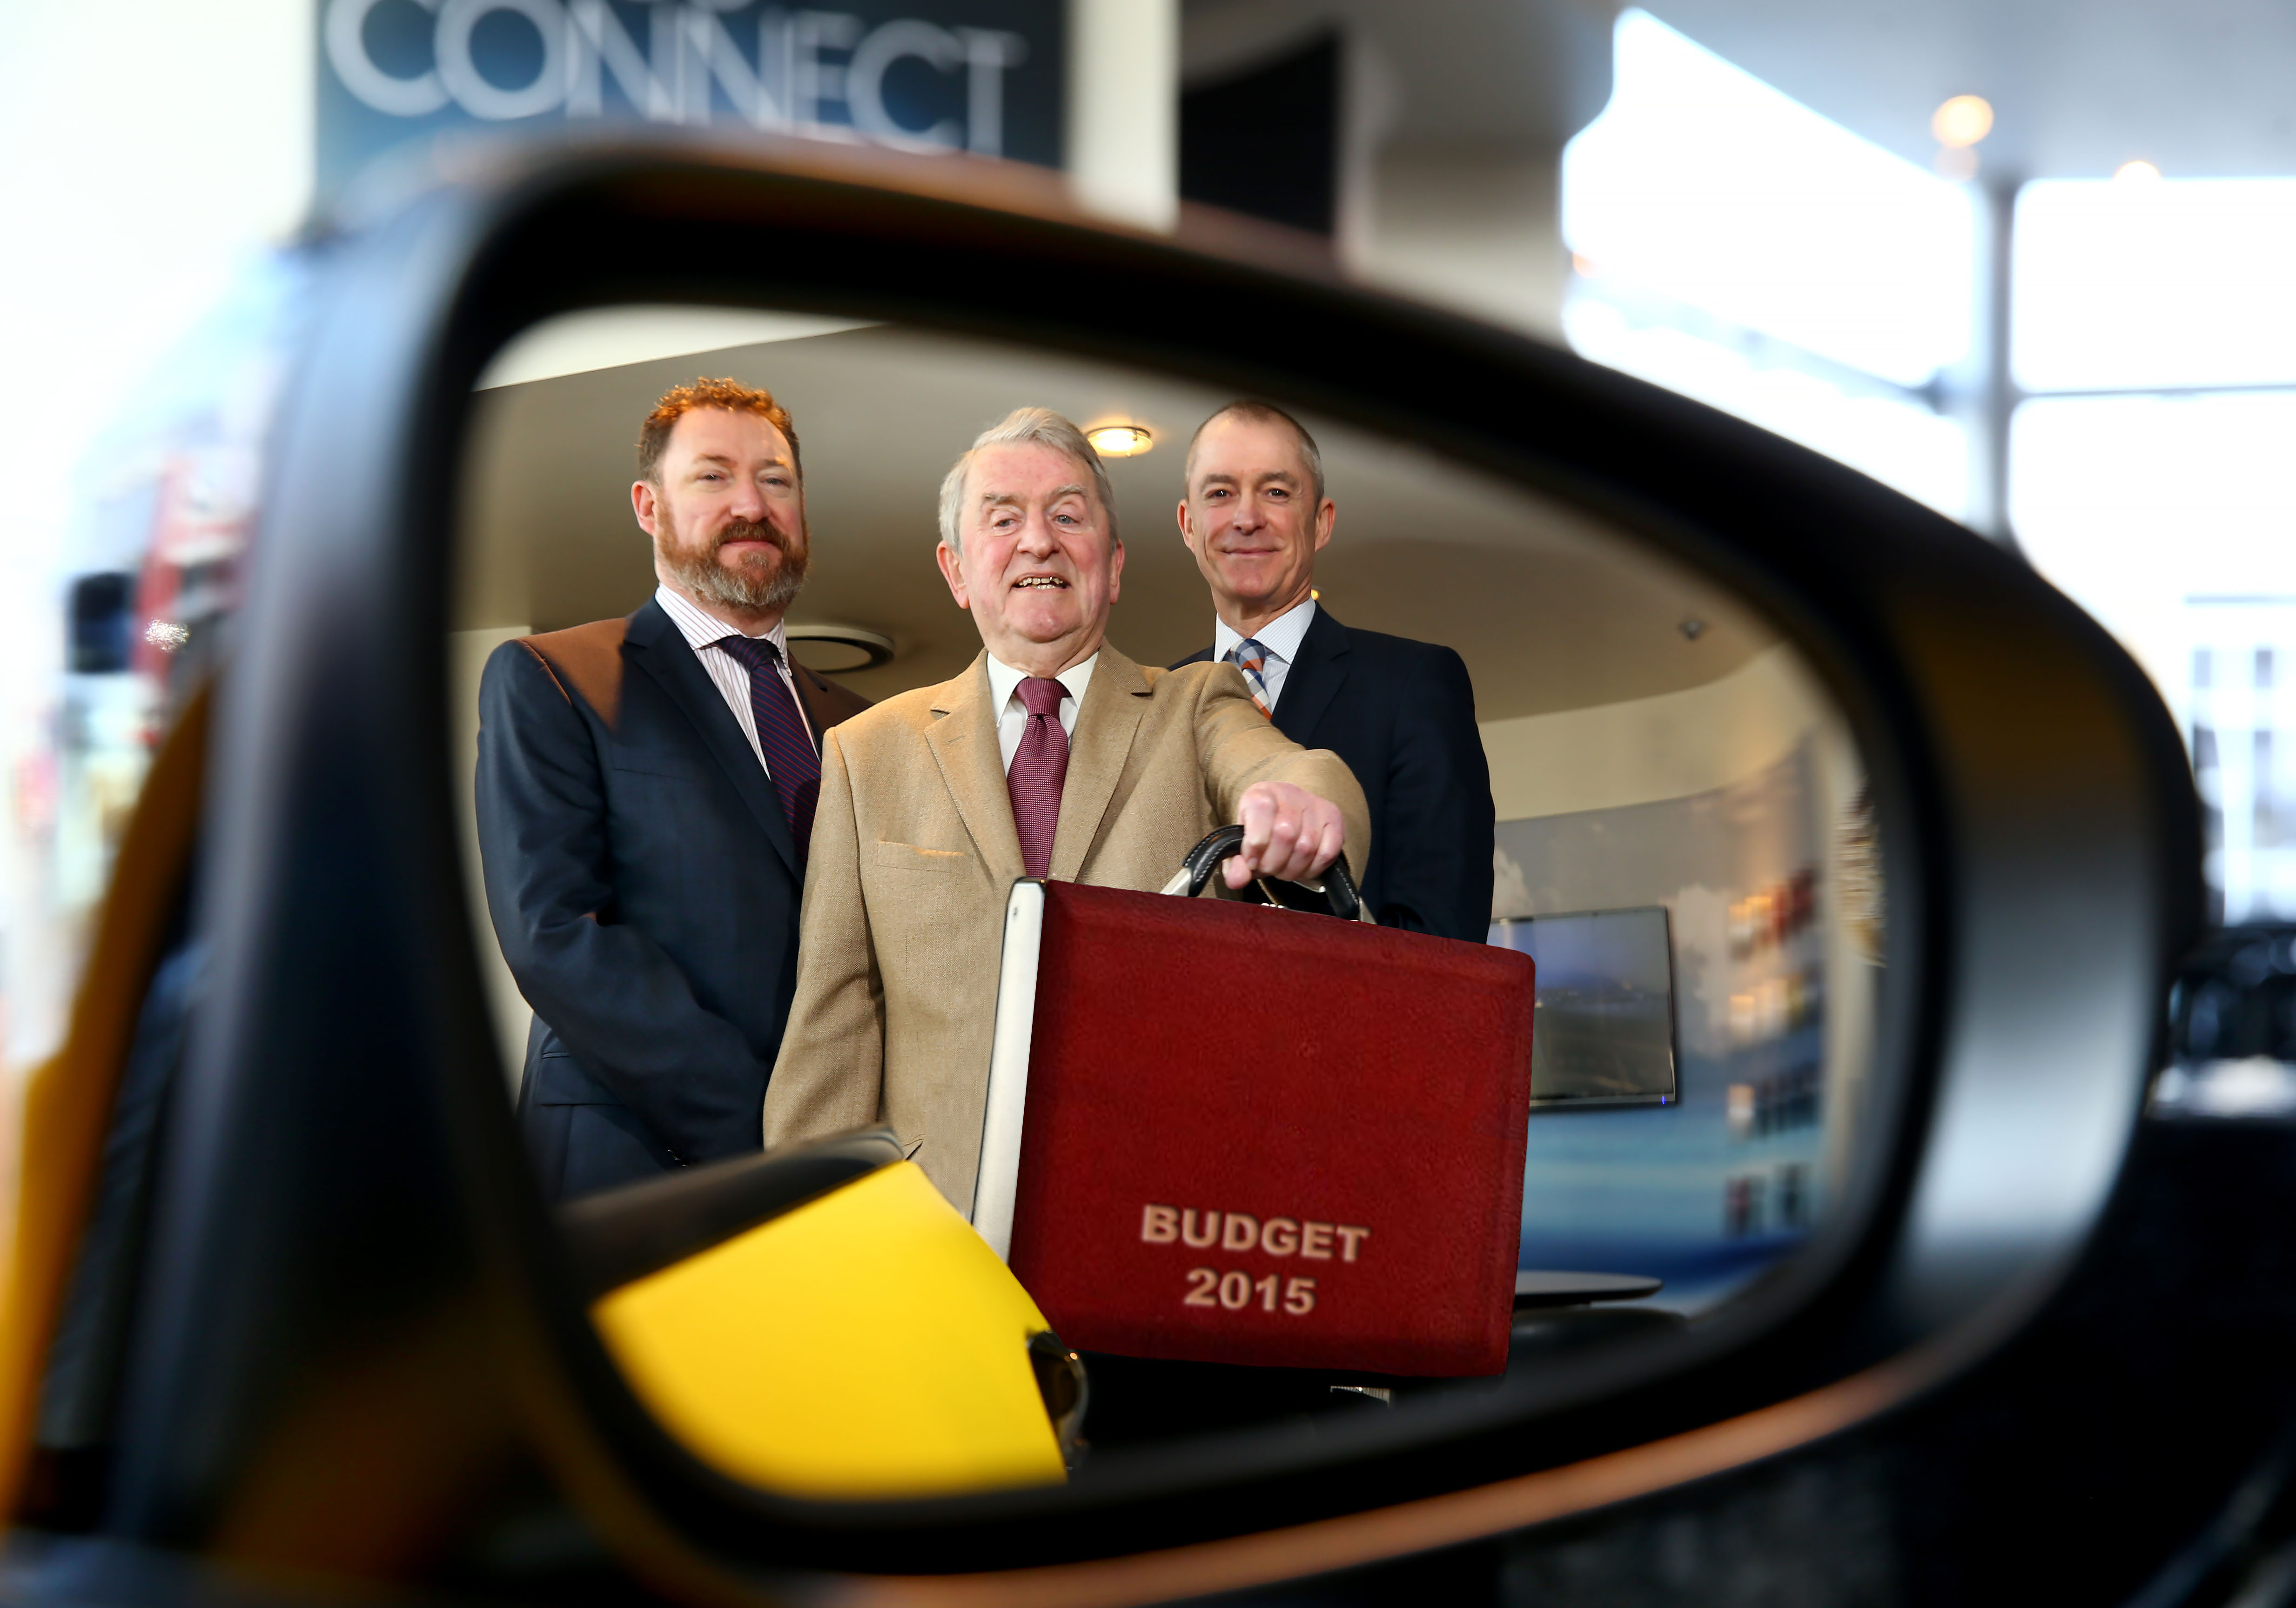 Budget Briefing presenters Paul O'Connor, John Simpson and Philip Miley